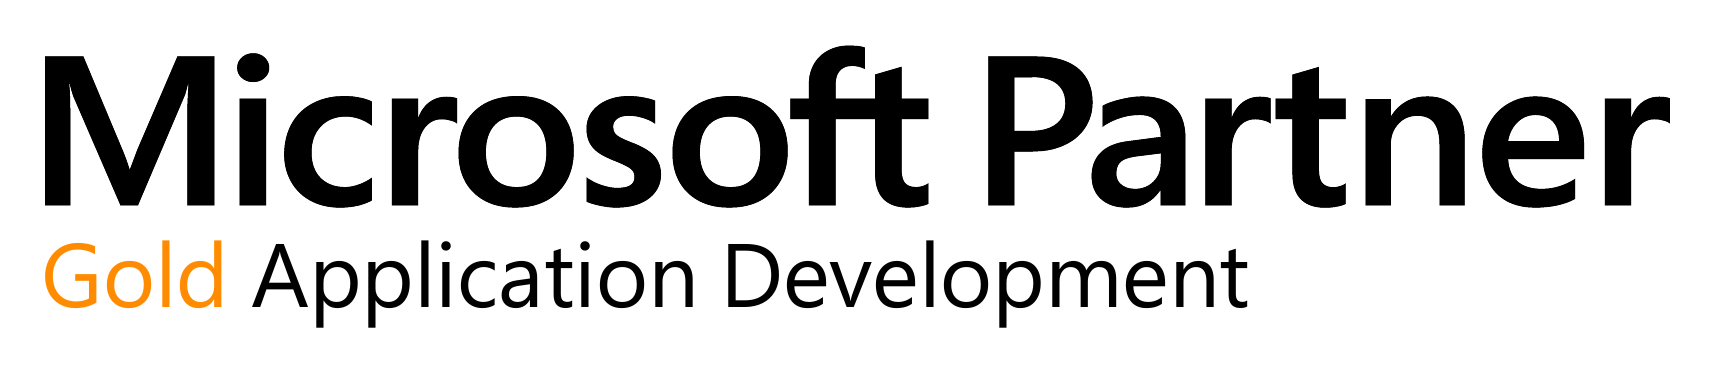 iqDynamics is a Microsoft Gold Partner in Application Development